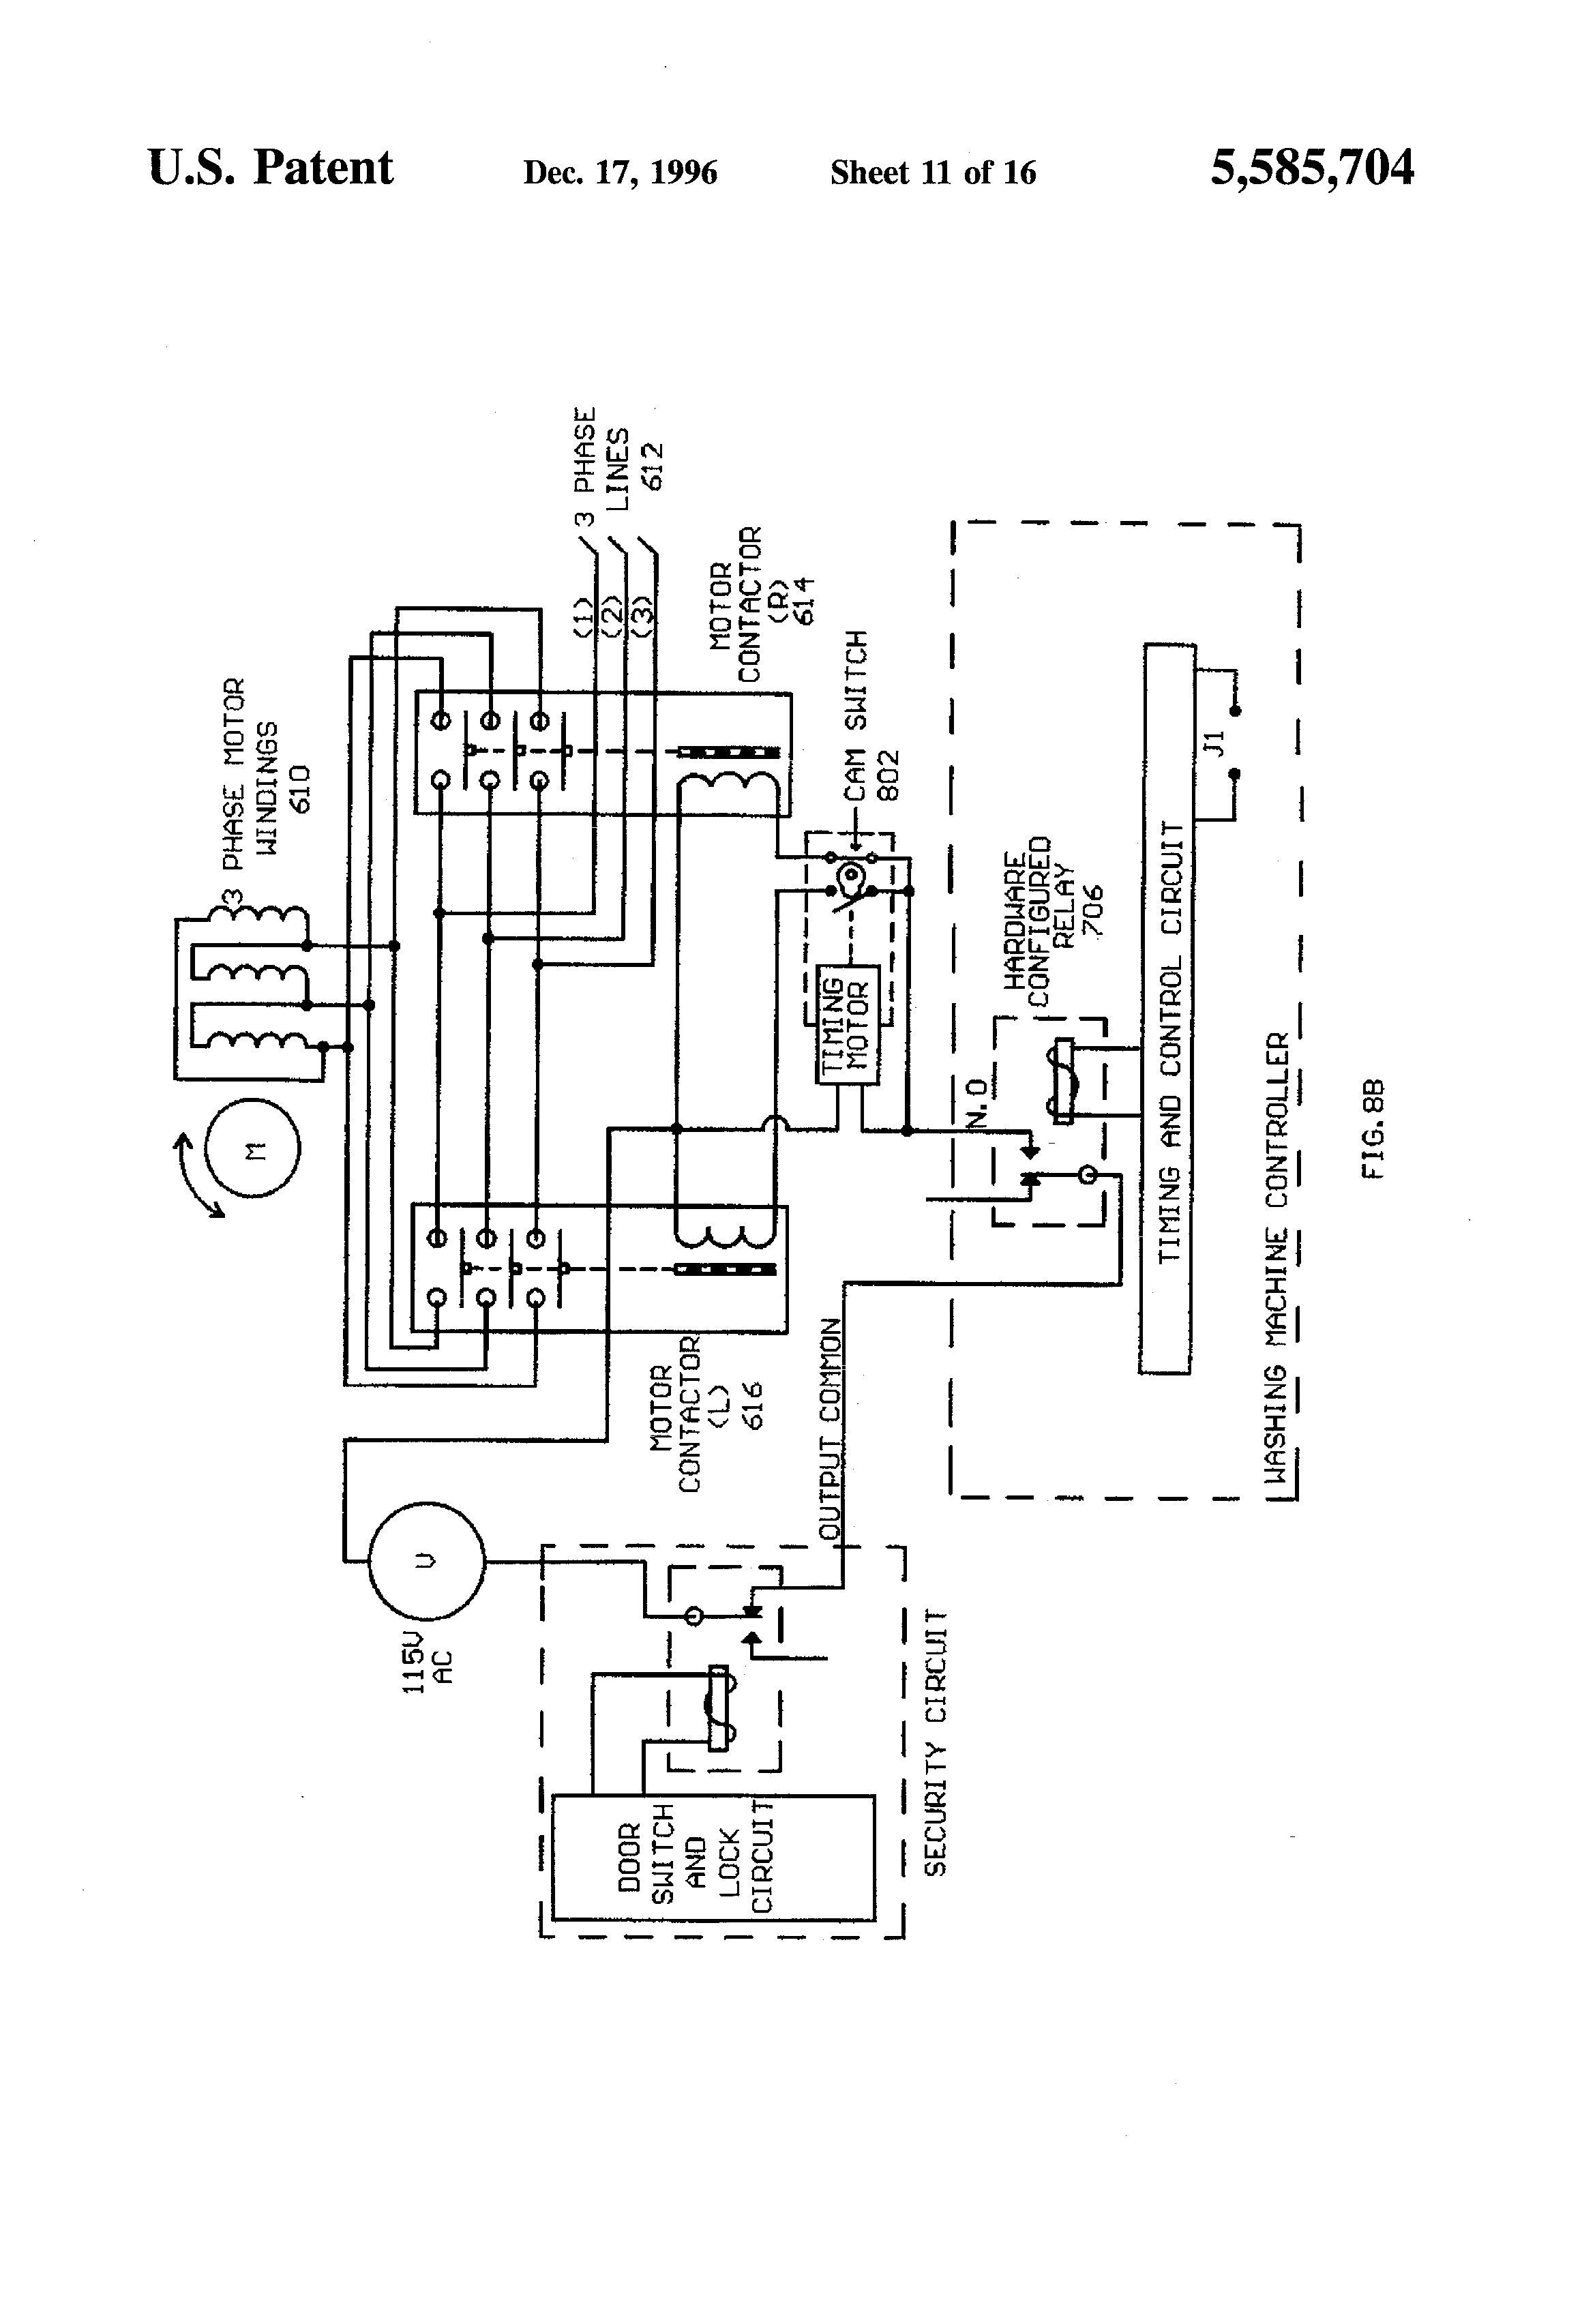 1994 Ge Filter Flo Washer Motor Wiring Diagram 46 Washing Machine Us5585704 11 Patent Computer Means For Commercial Machines At